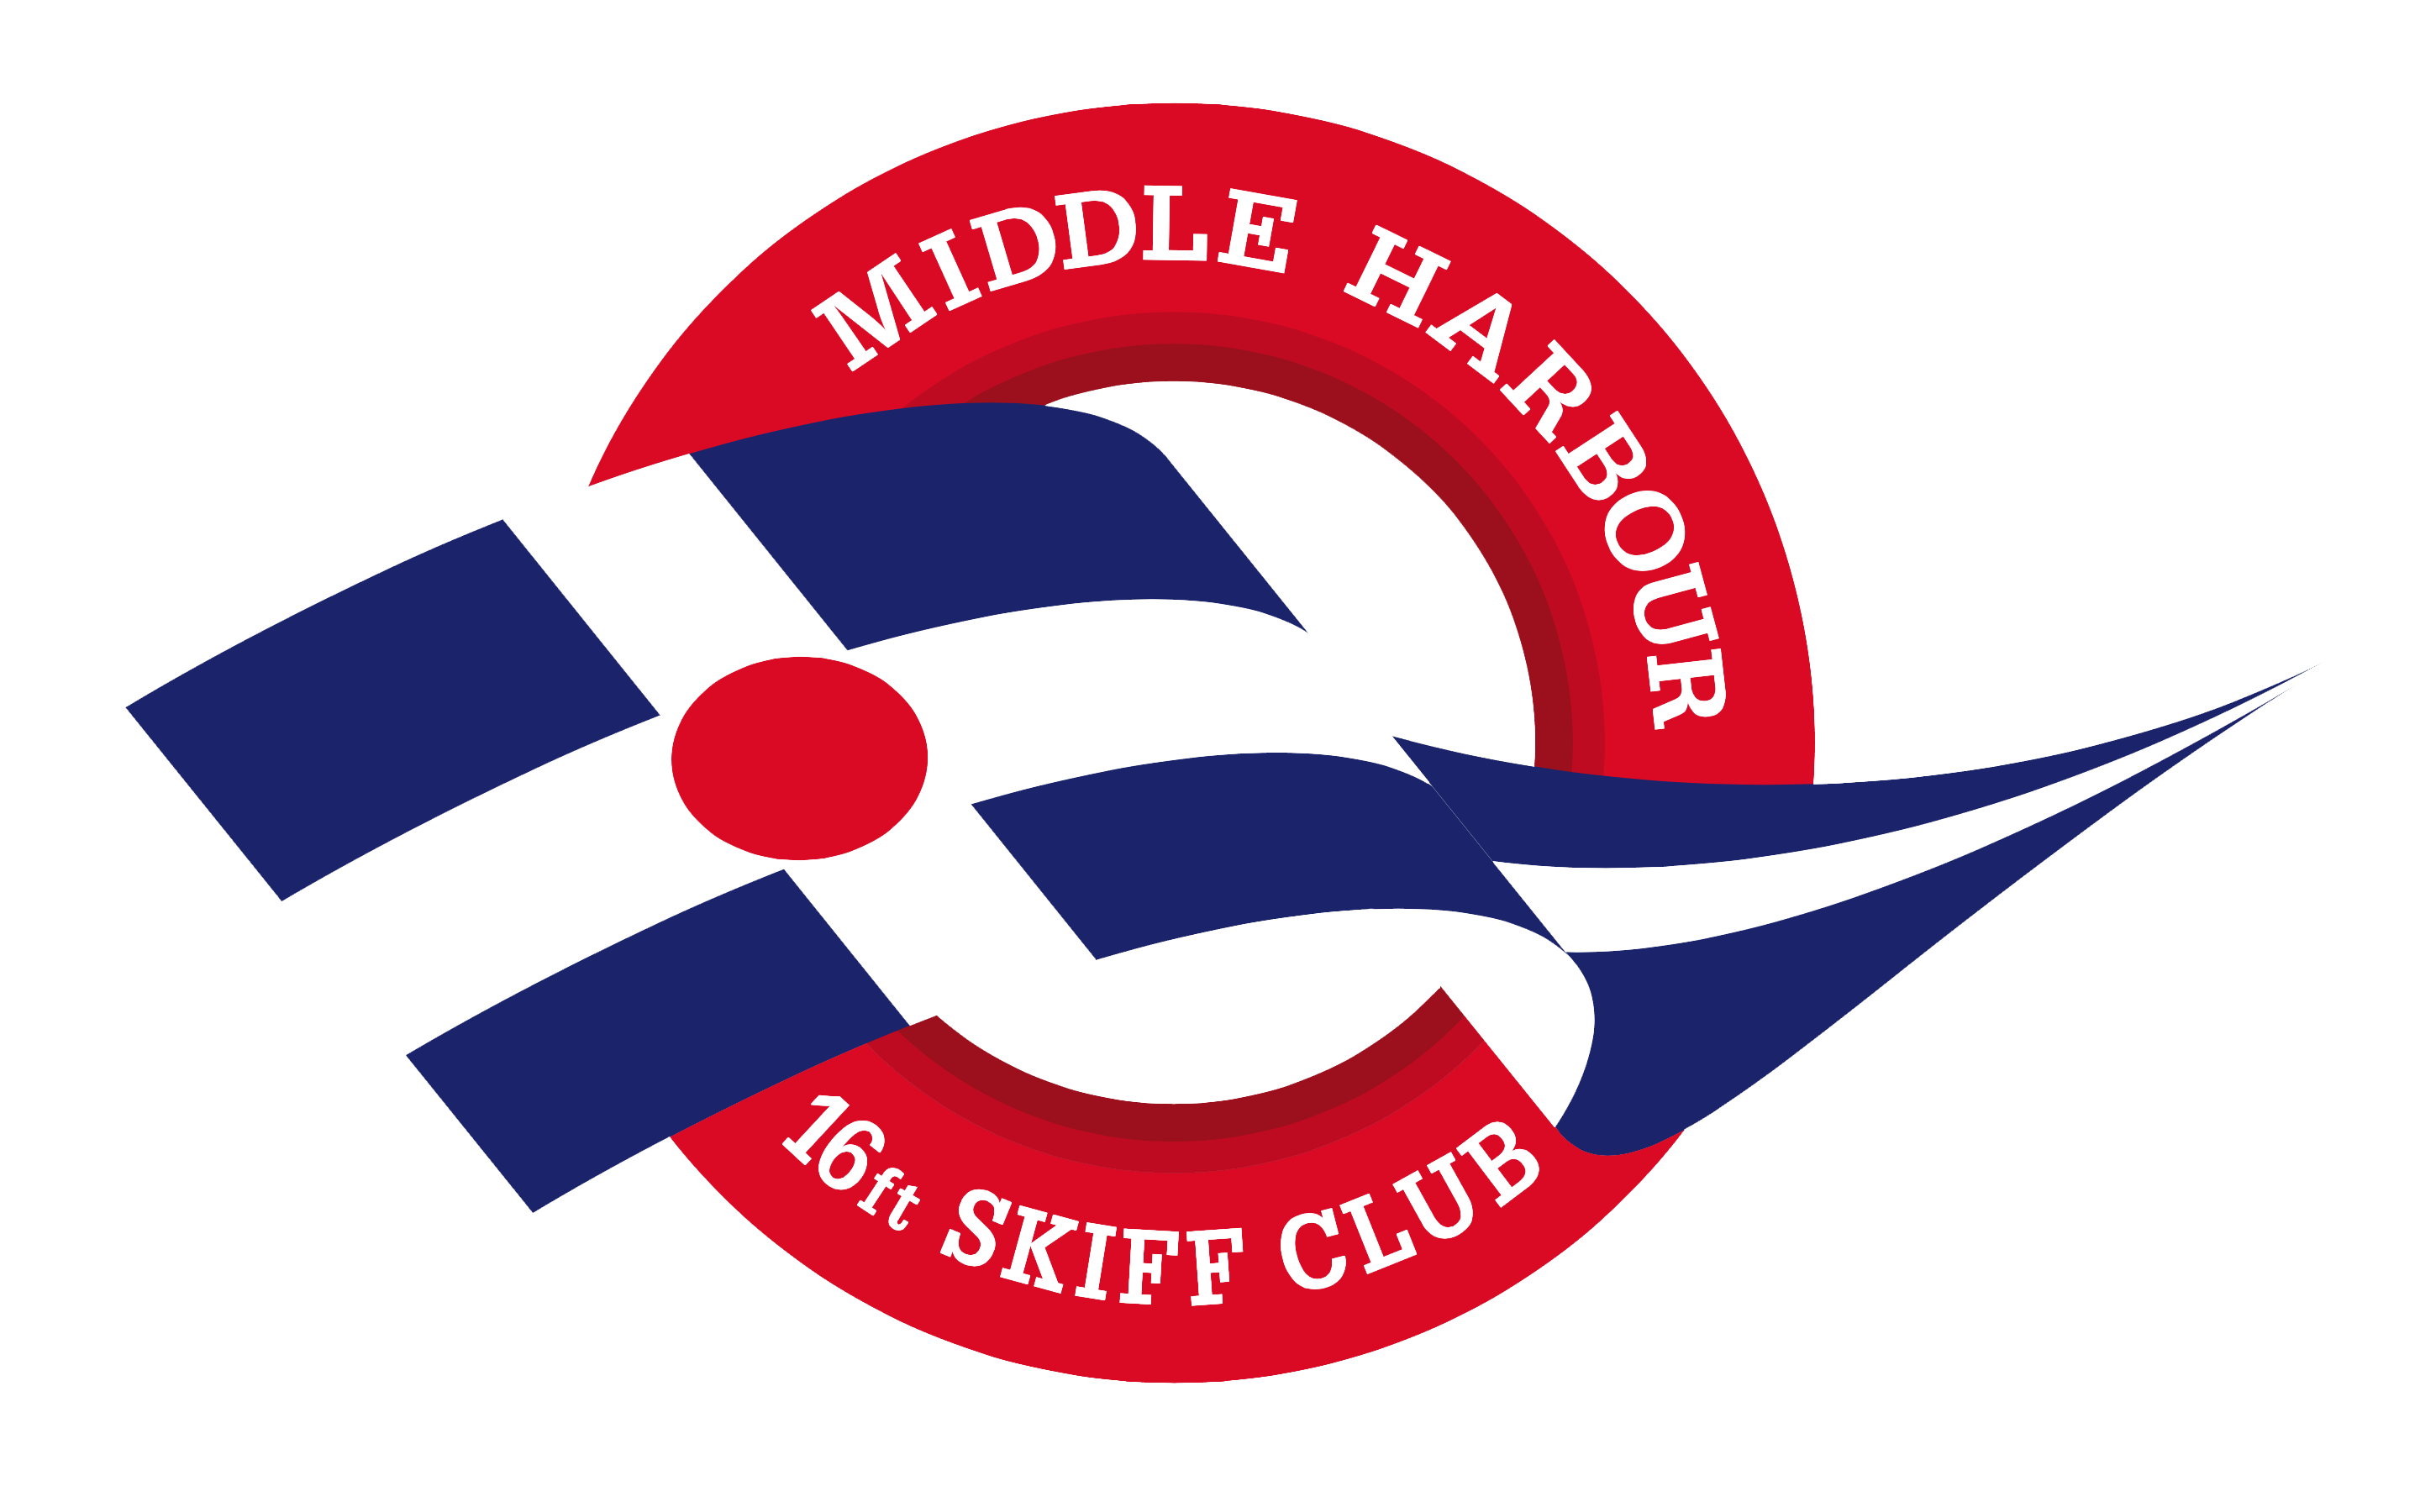 Middle Harbour 16' Skiff Club